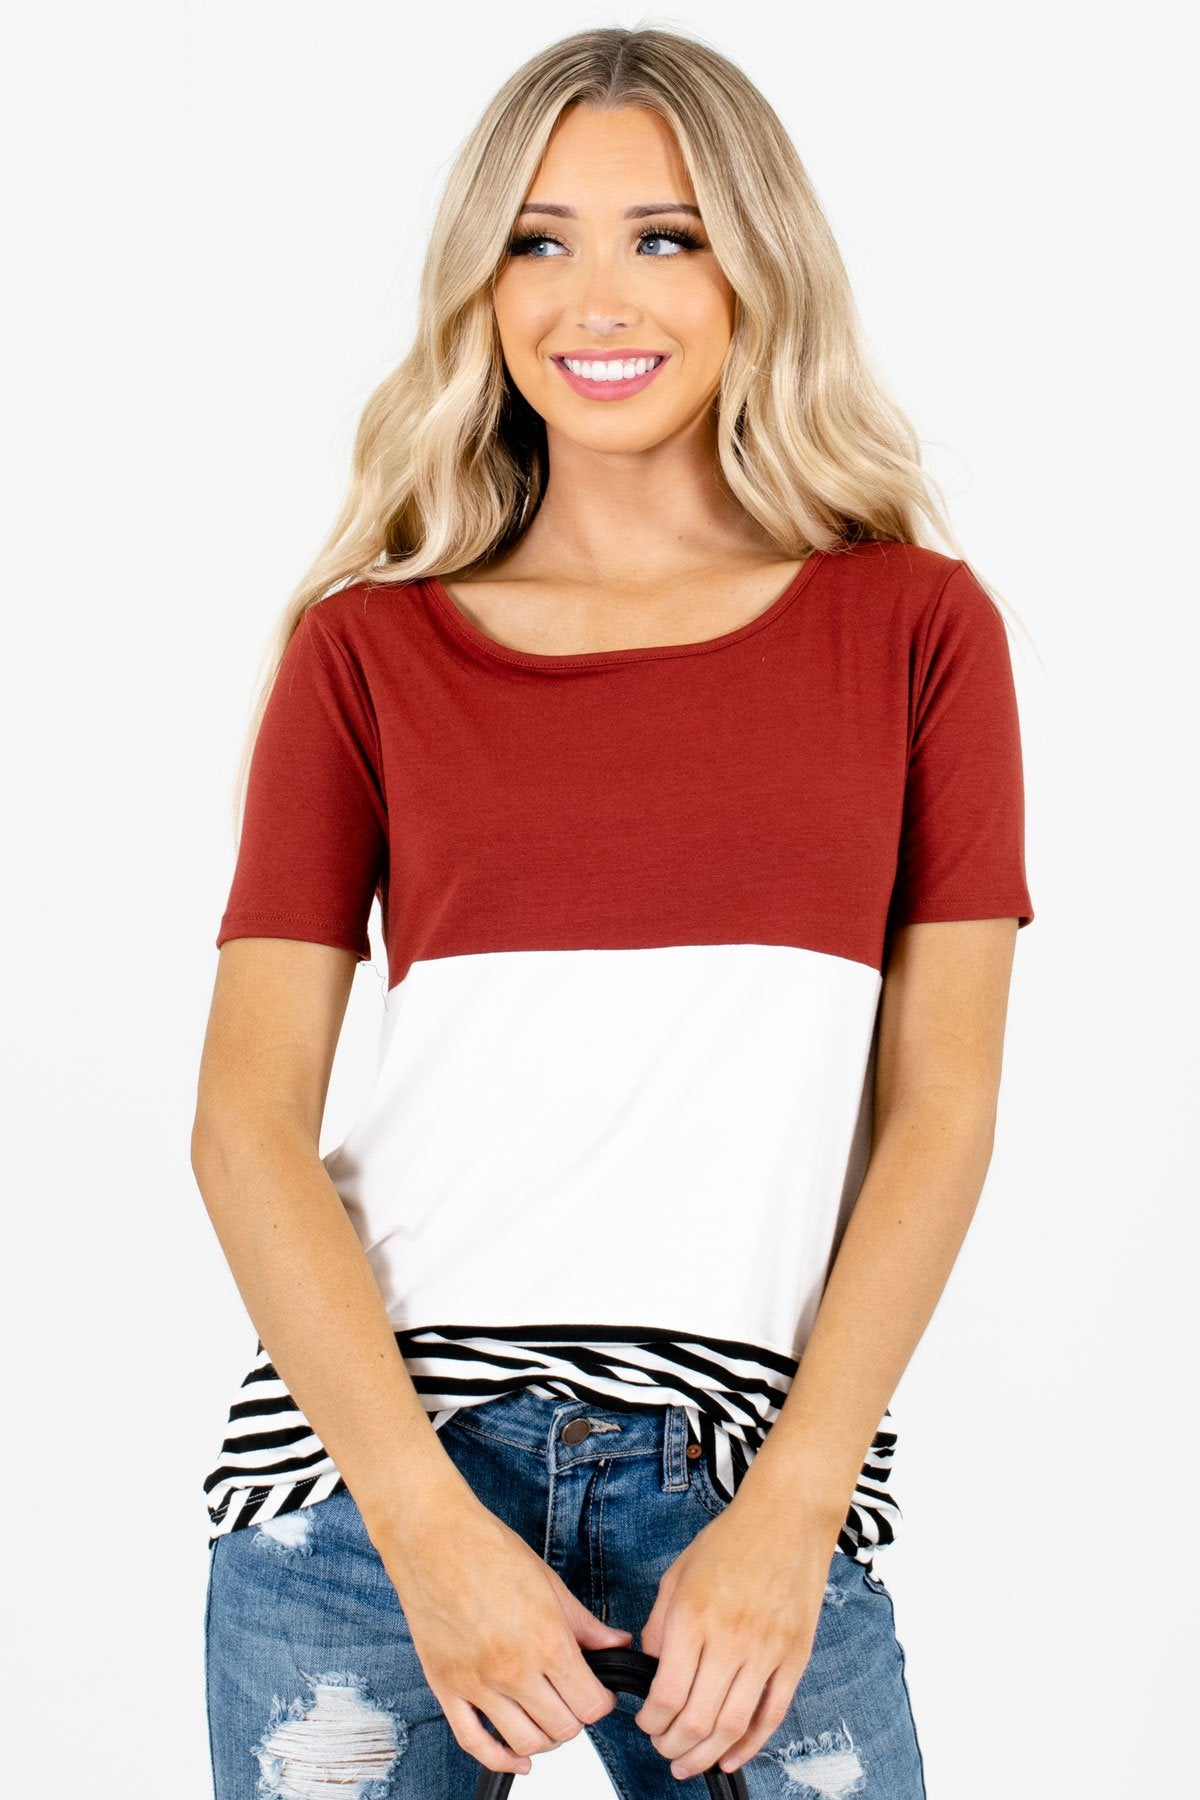 Rust Red White and Black Color Block Patterned Boutique Tops for Women